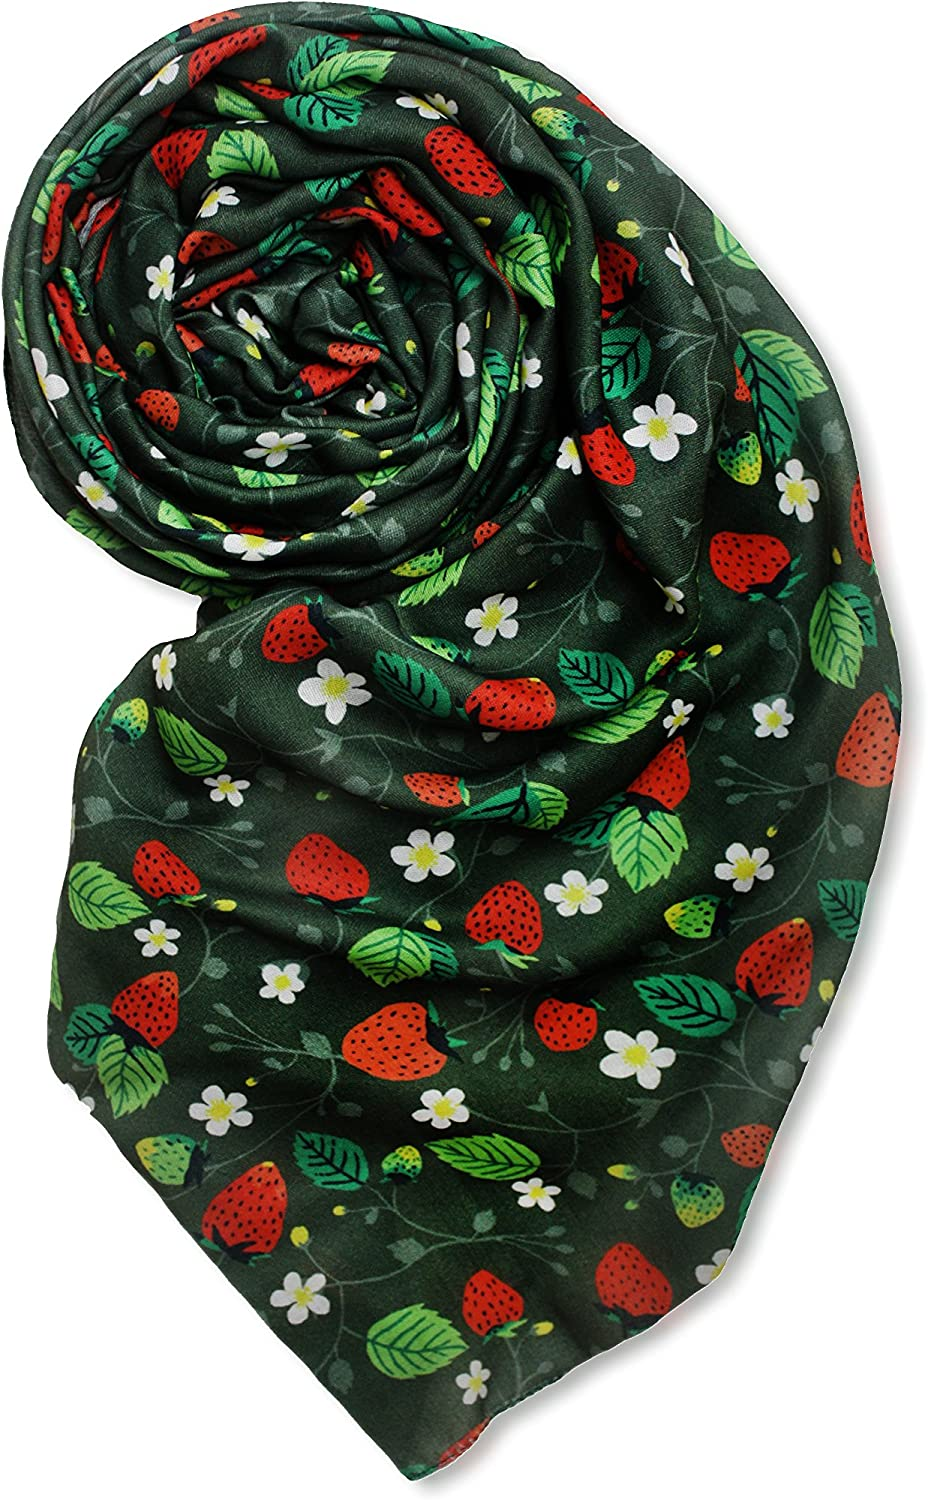 Printed Village Women's Food and Drink Theme Scarves from designers around the world - light weight fashion shawl wrap